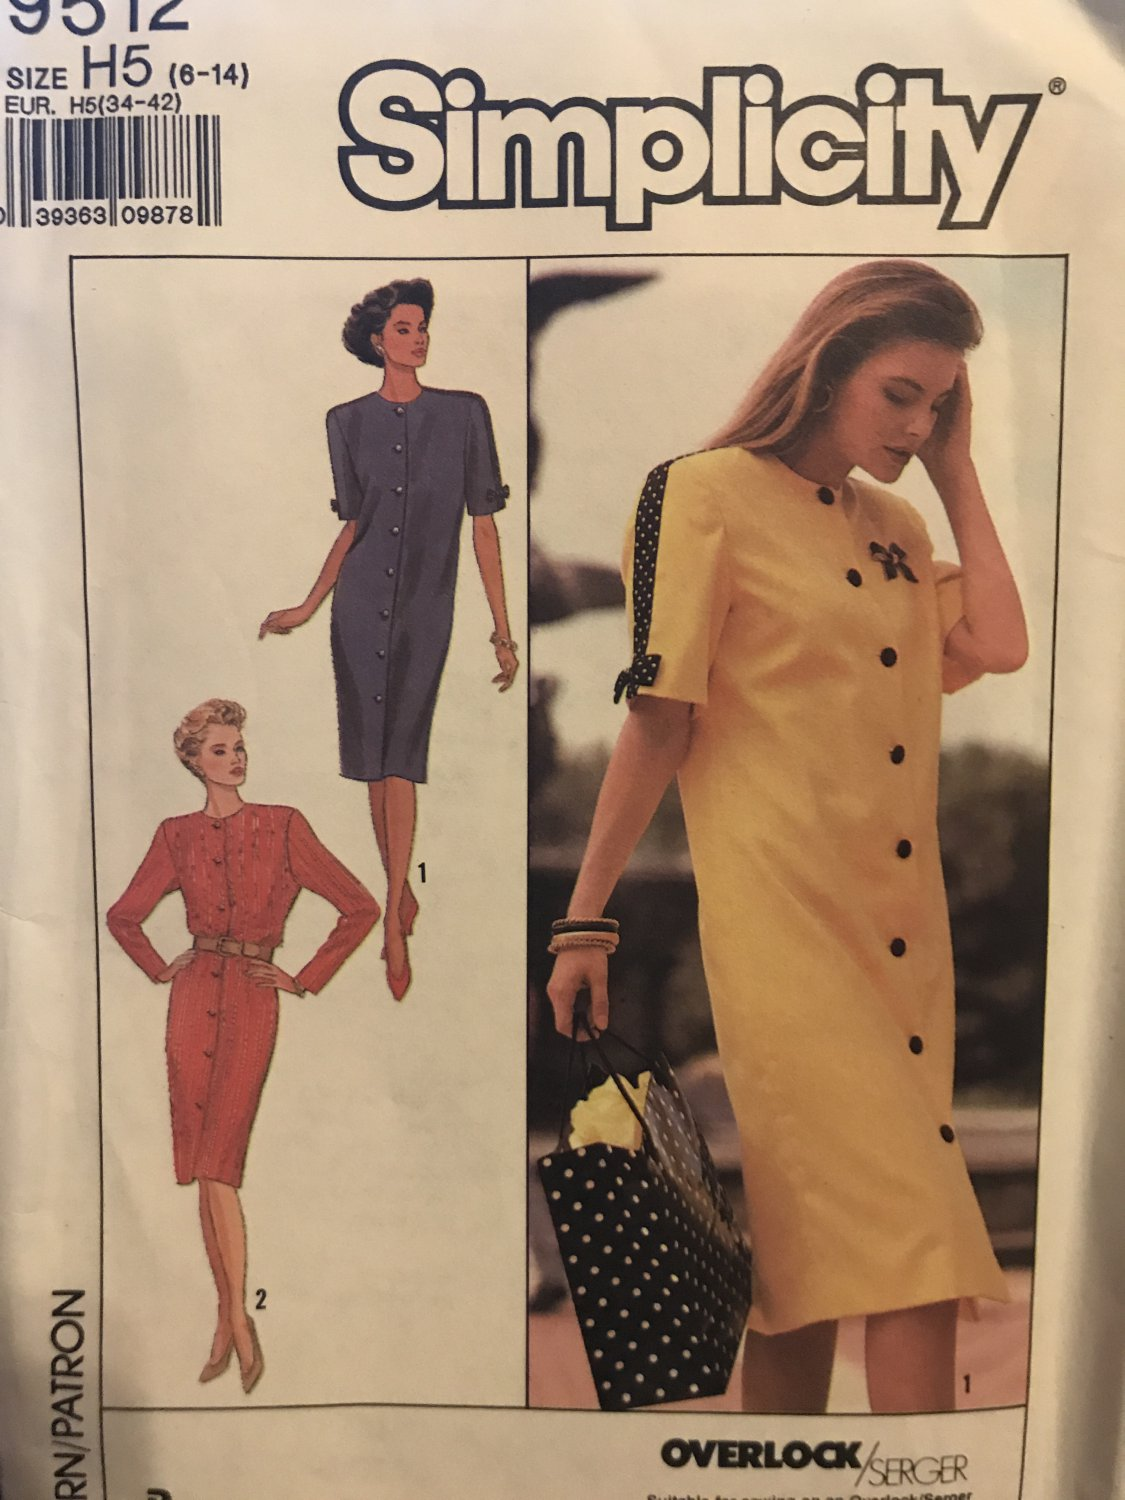 Simplicity 9512 Sewing Pattern Dress with Long or Short Sleeves 6 - 14